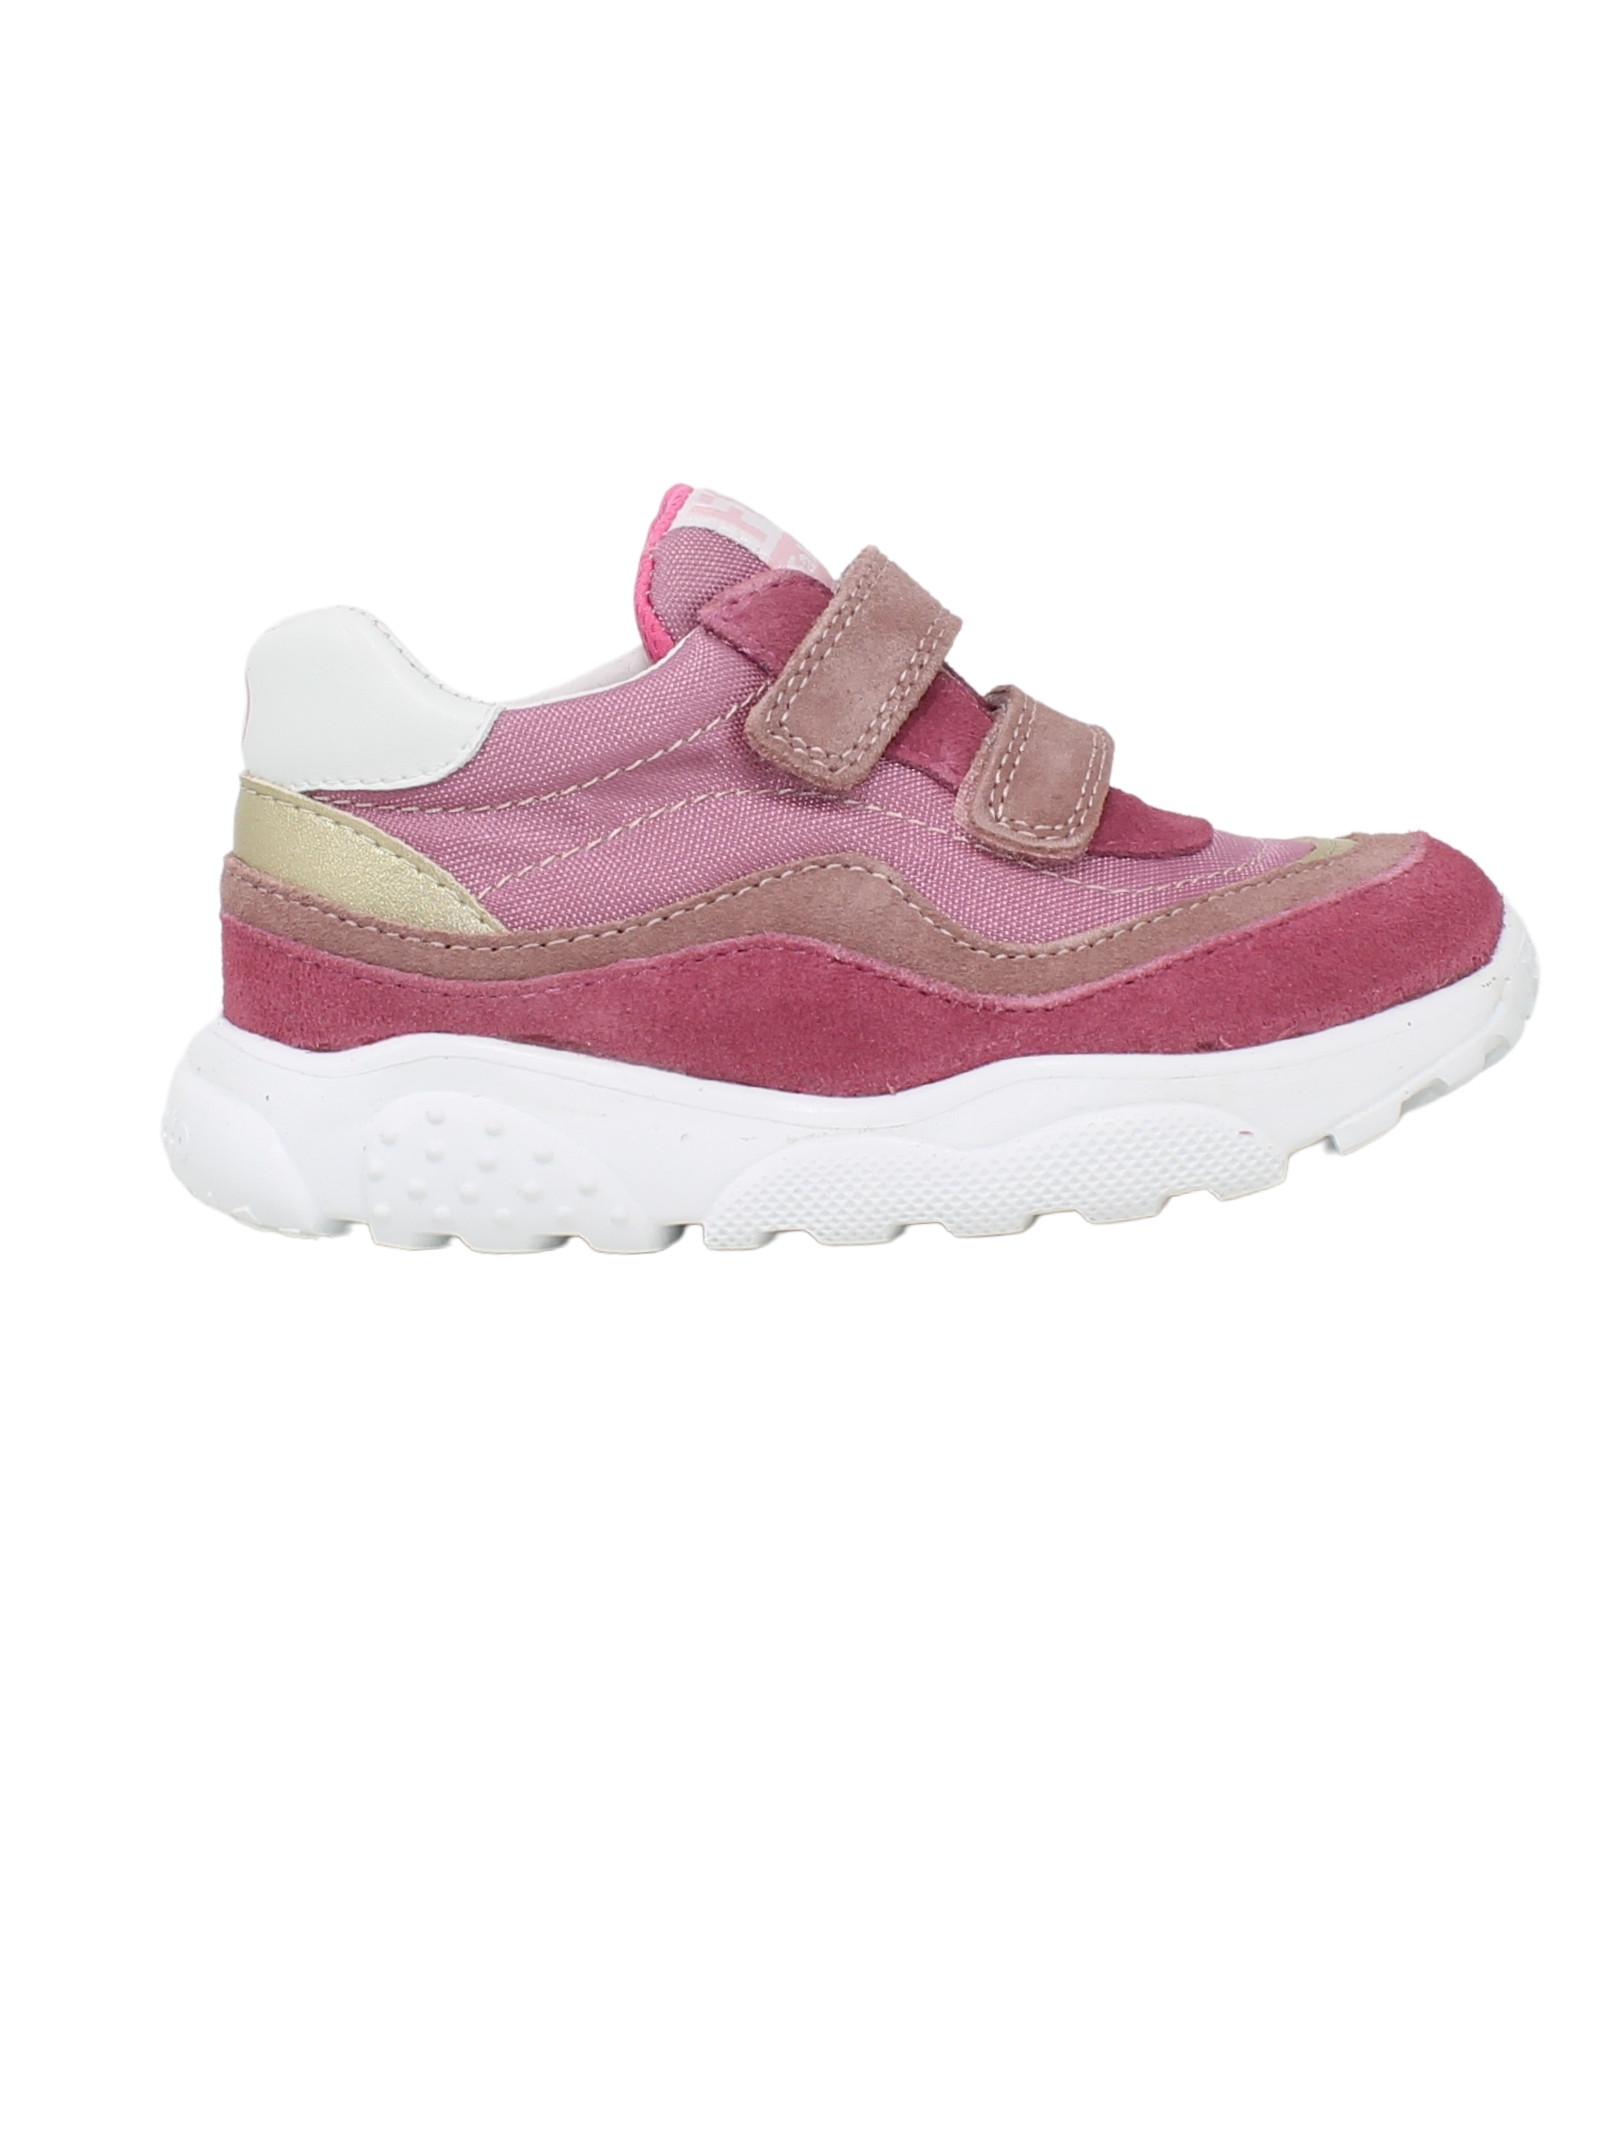 Amantea Sneakers for Girls FALCOTTO | Sneakers | 0012016131021L13FUCHSIA-ROSE